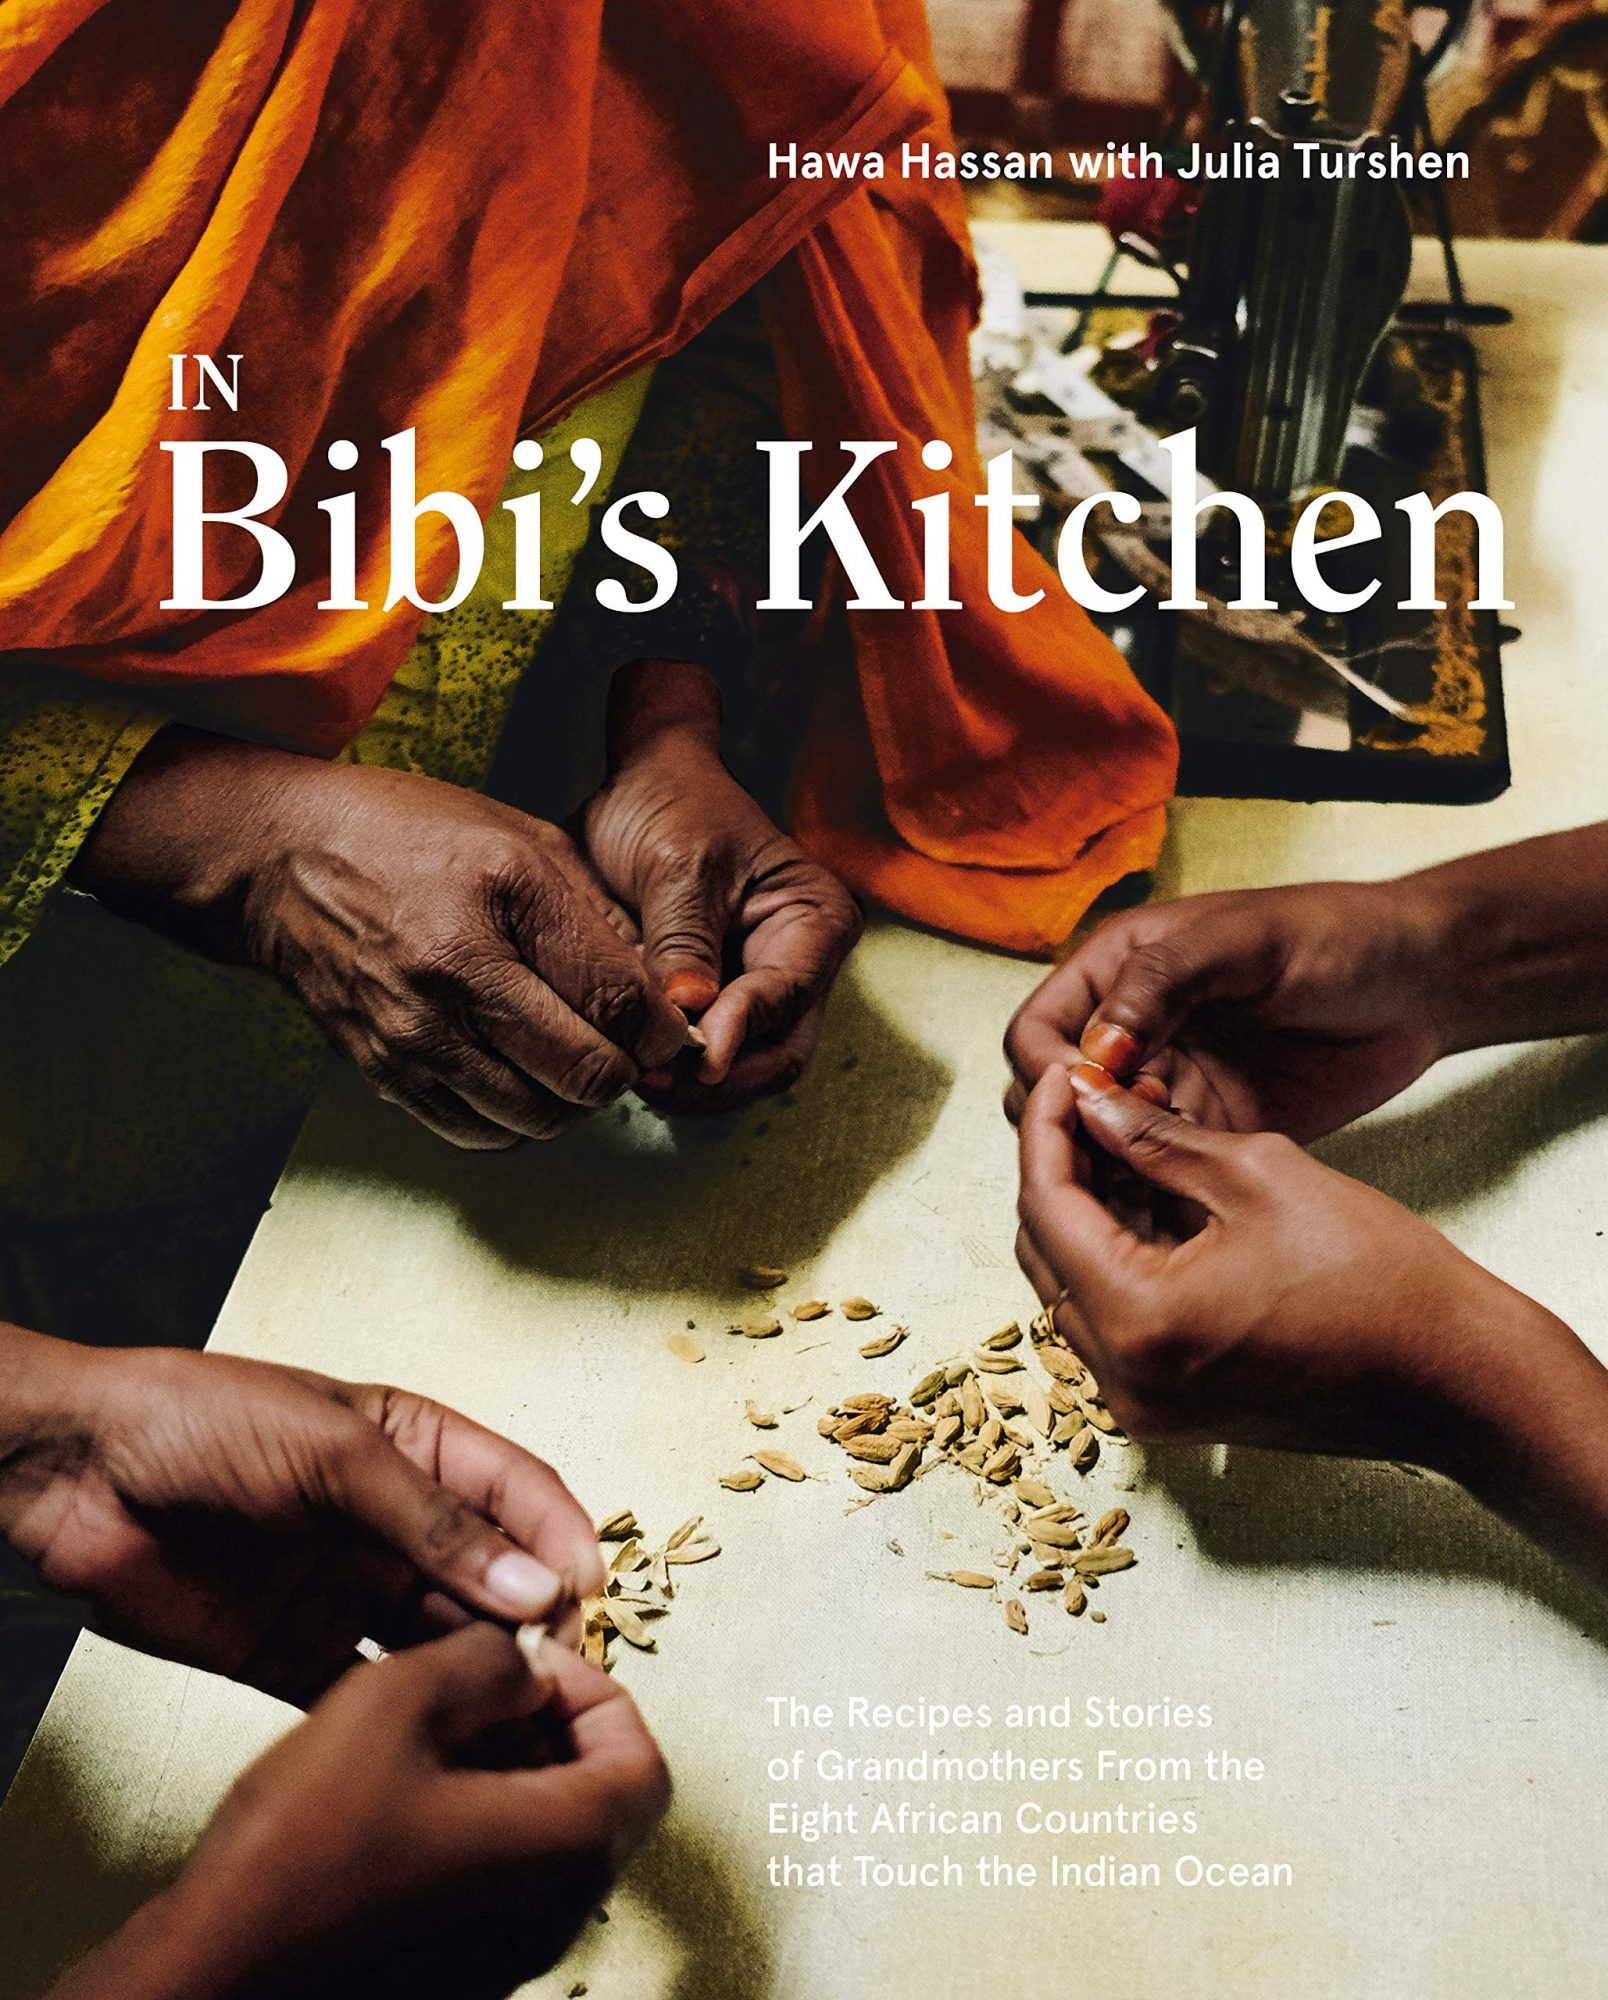 cover of In Bibi's Kitchen: The Recipes and Stories of Grandmothers from the Eight African Countries that Touch the Indian Ocean